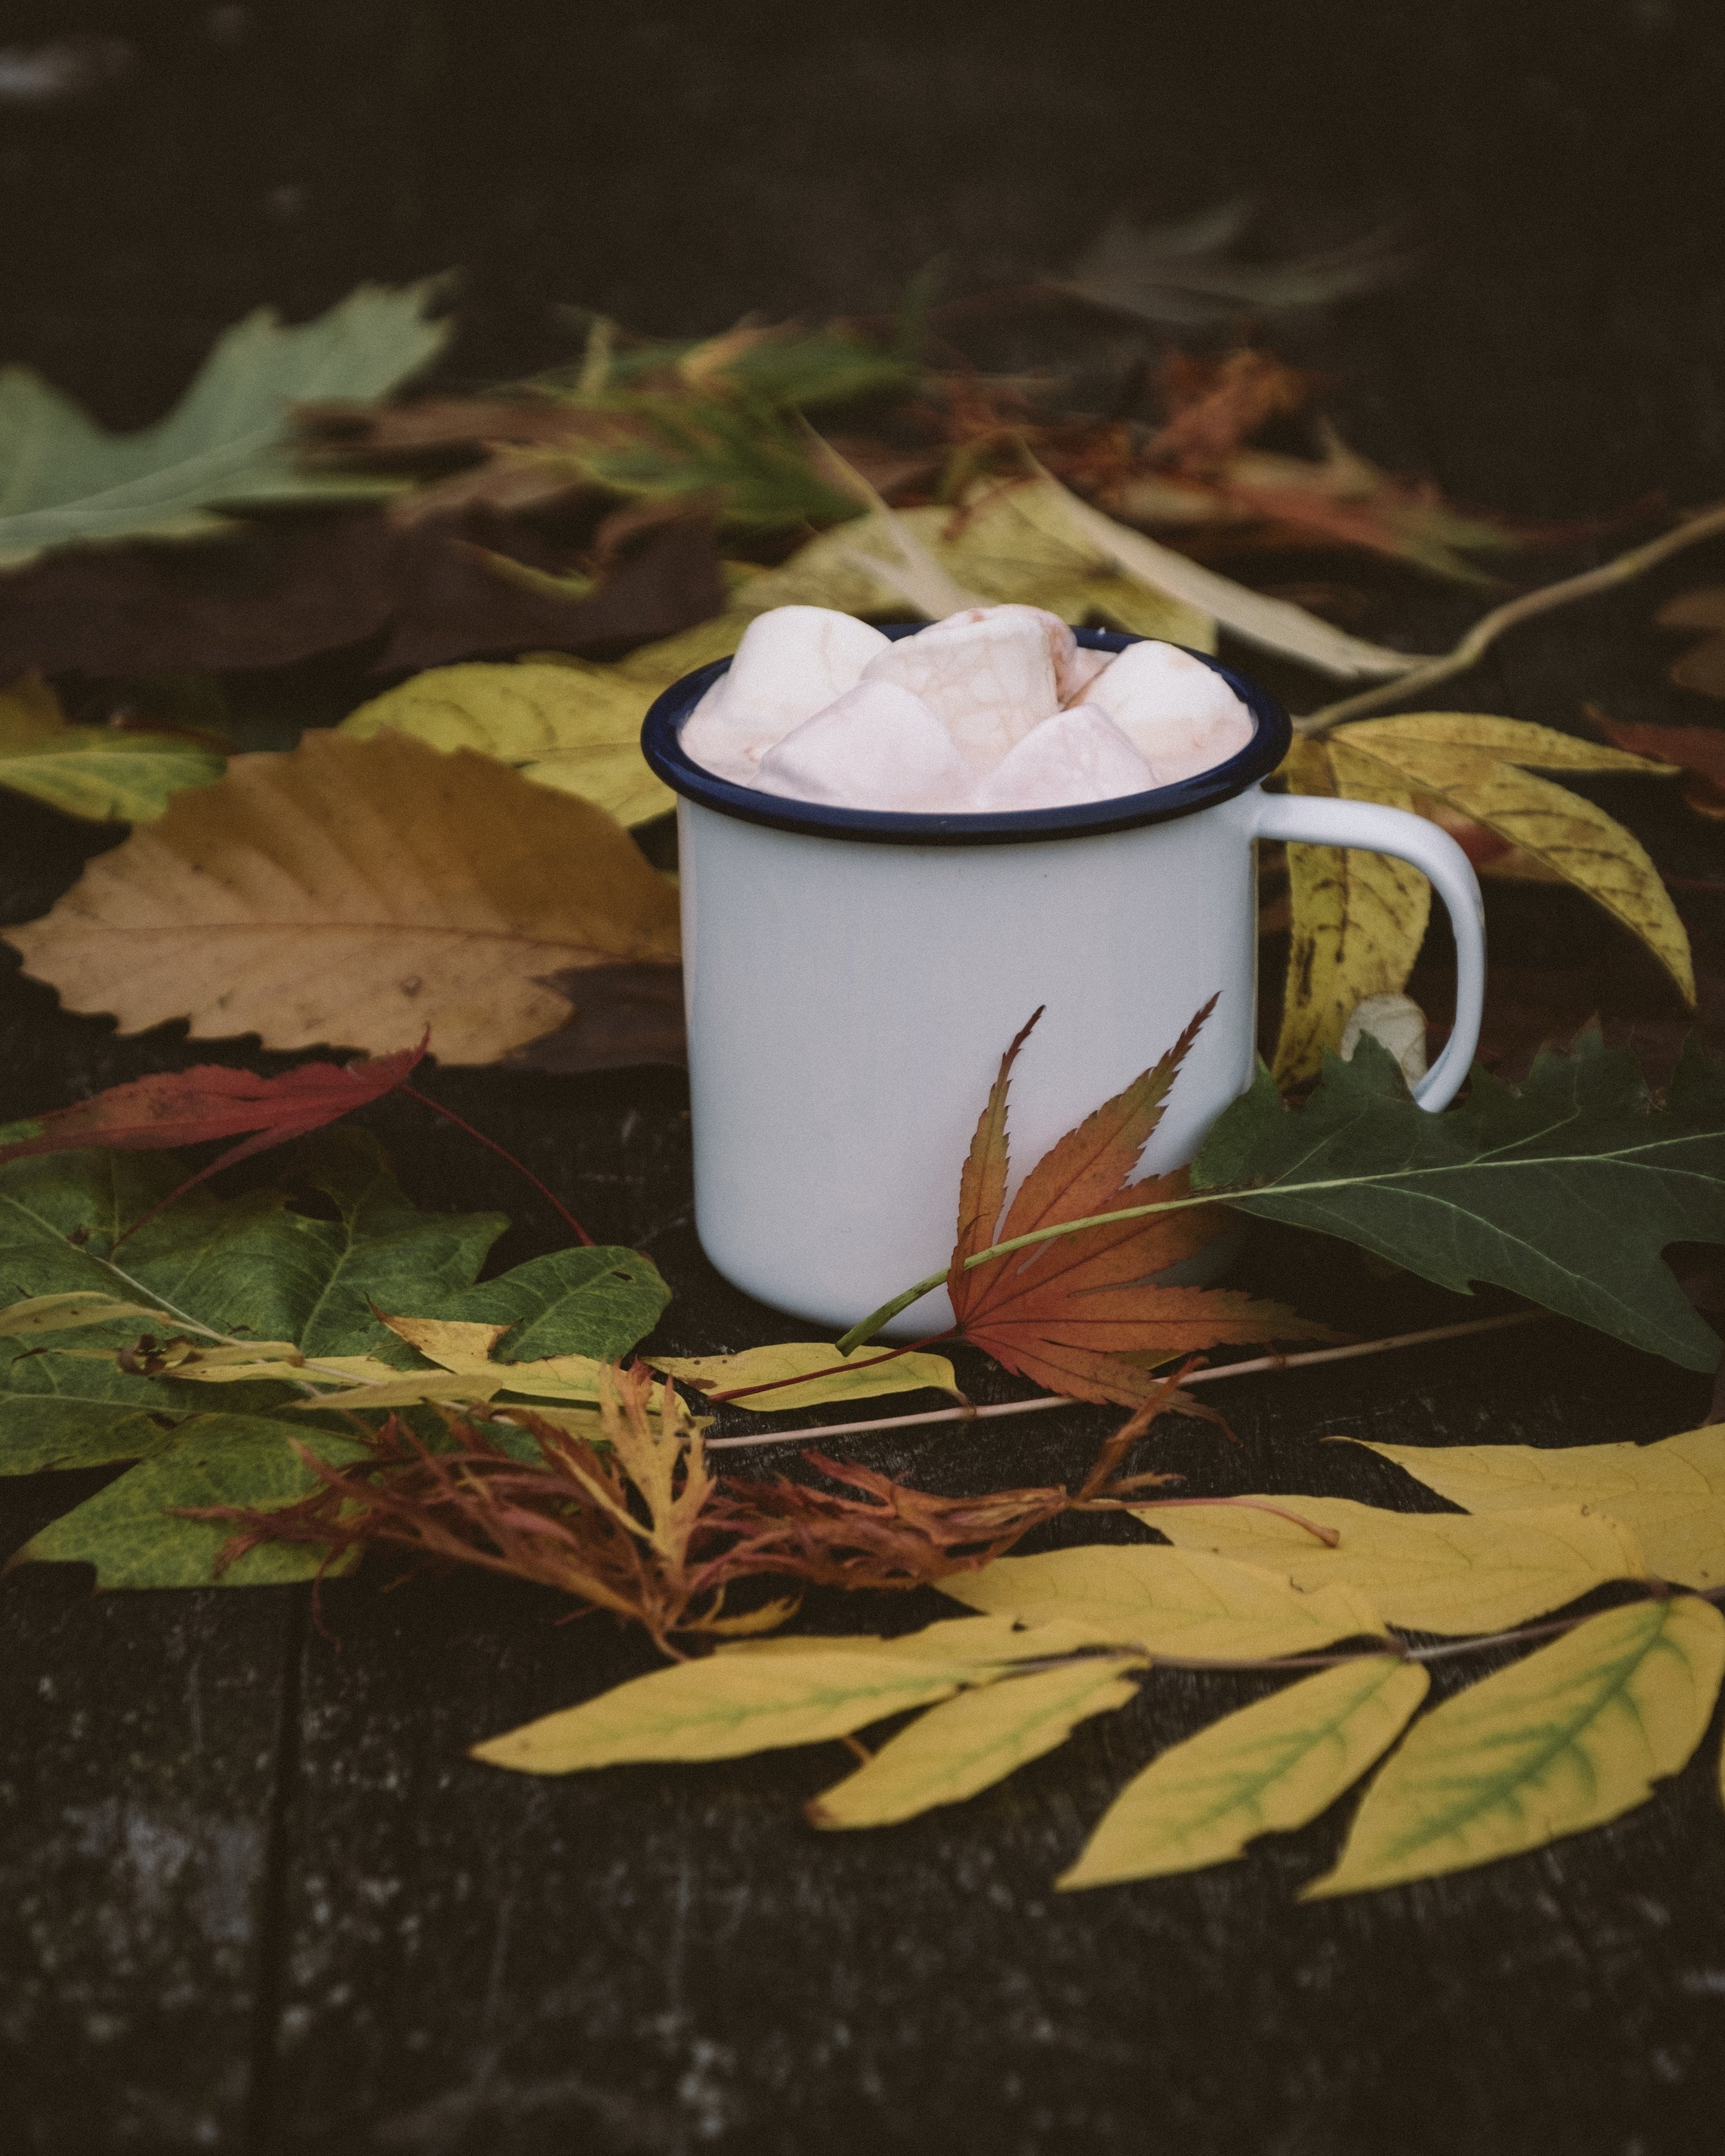 """I call it """"A Portrait Of A Hot Chocolate In The Autumn Forest"""""""